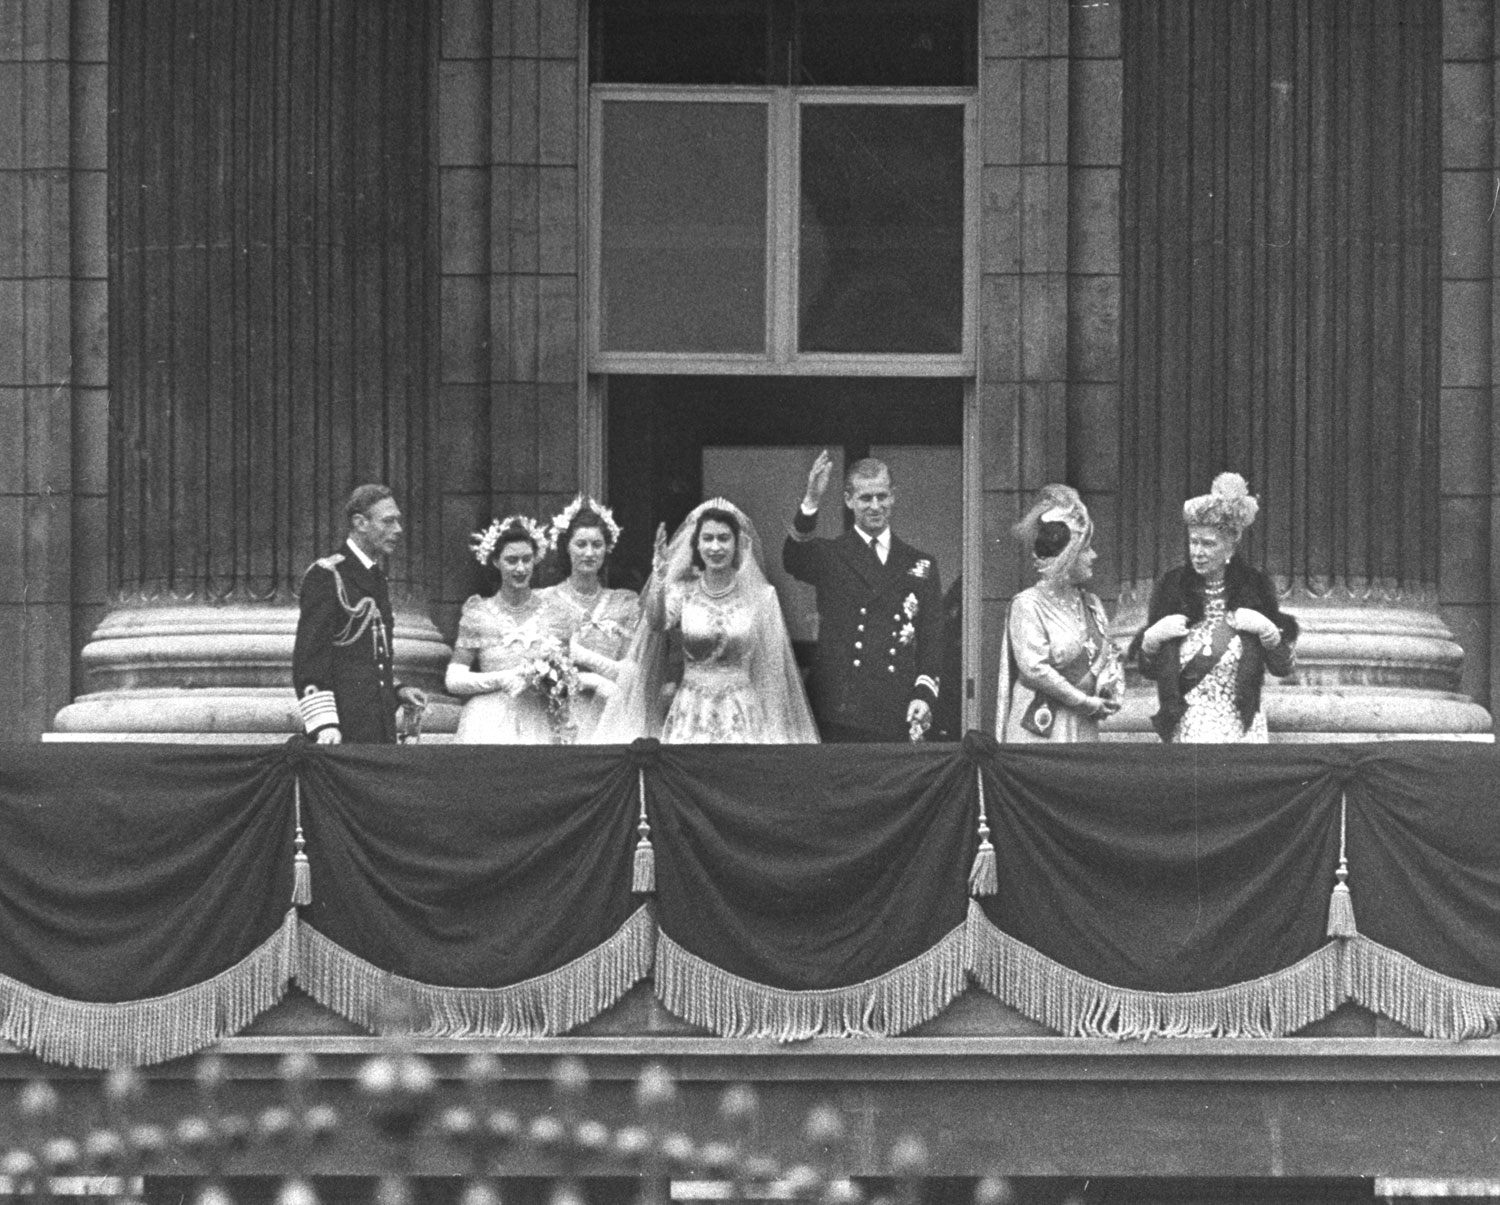 Royals on the balcony of Buckingham Palace: (l. to r.) King George VI, Princess Margaret Rose, unidentified, Princess Elizabeth, Prince Philip, Queen Elizabeth and Queen Mother Mary after wedding of Elizabeth and Philip.